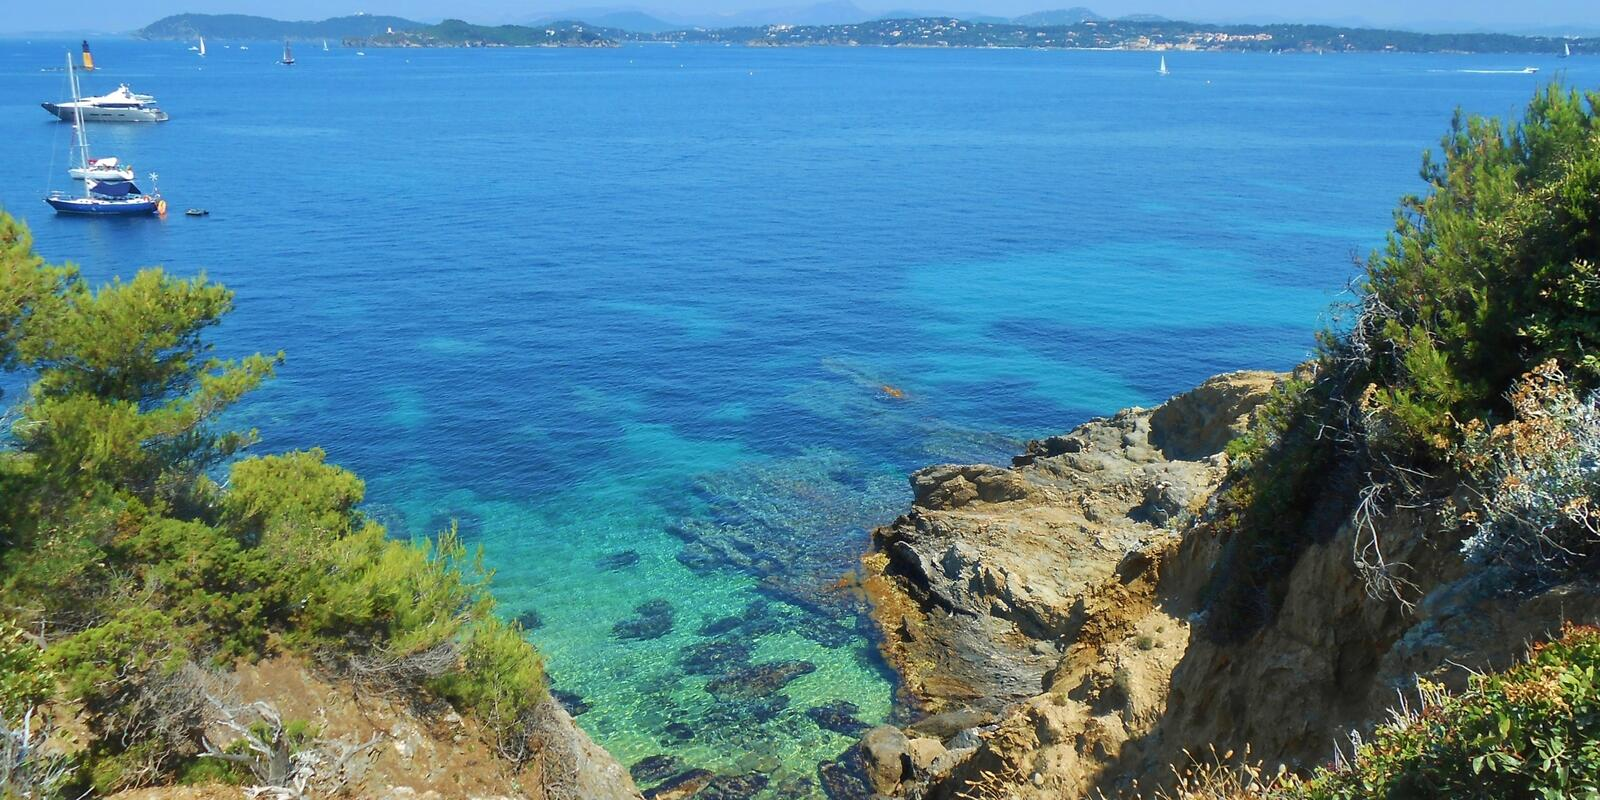 Sailing cruise on the French Riviera, from Sanremo to Porquerolles